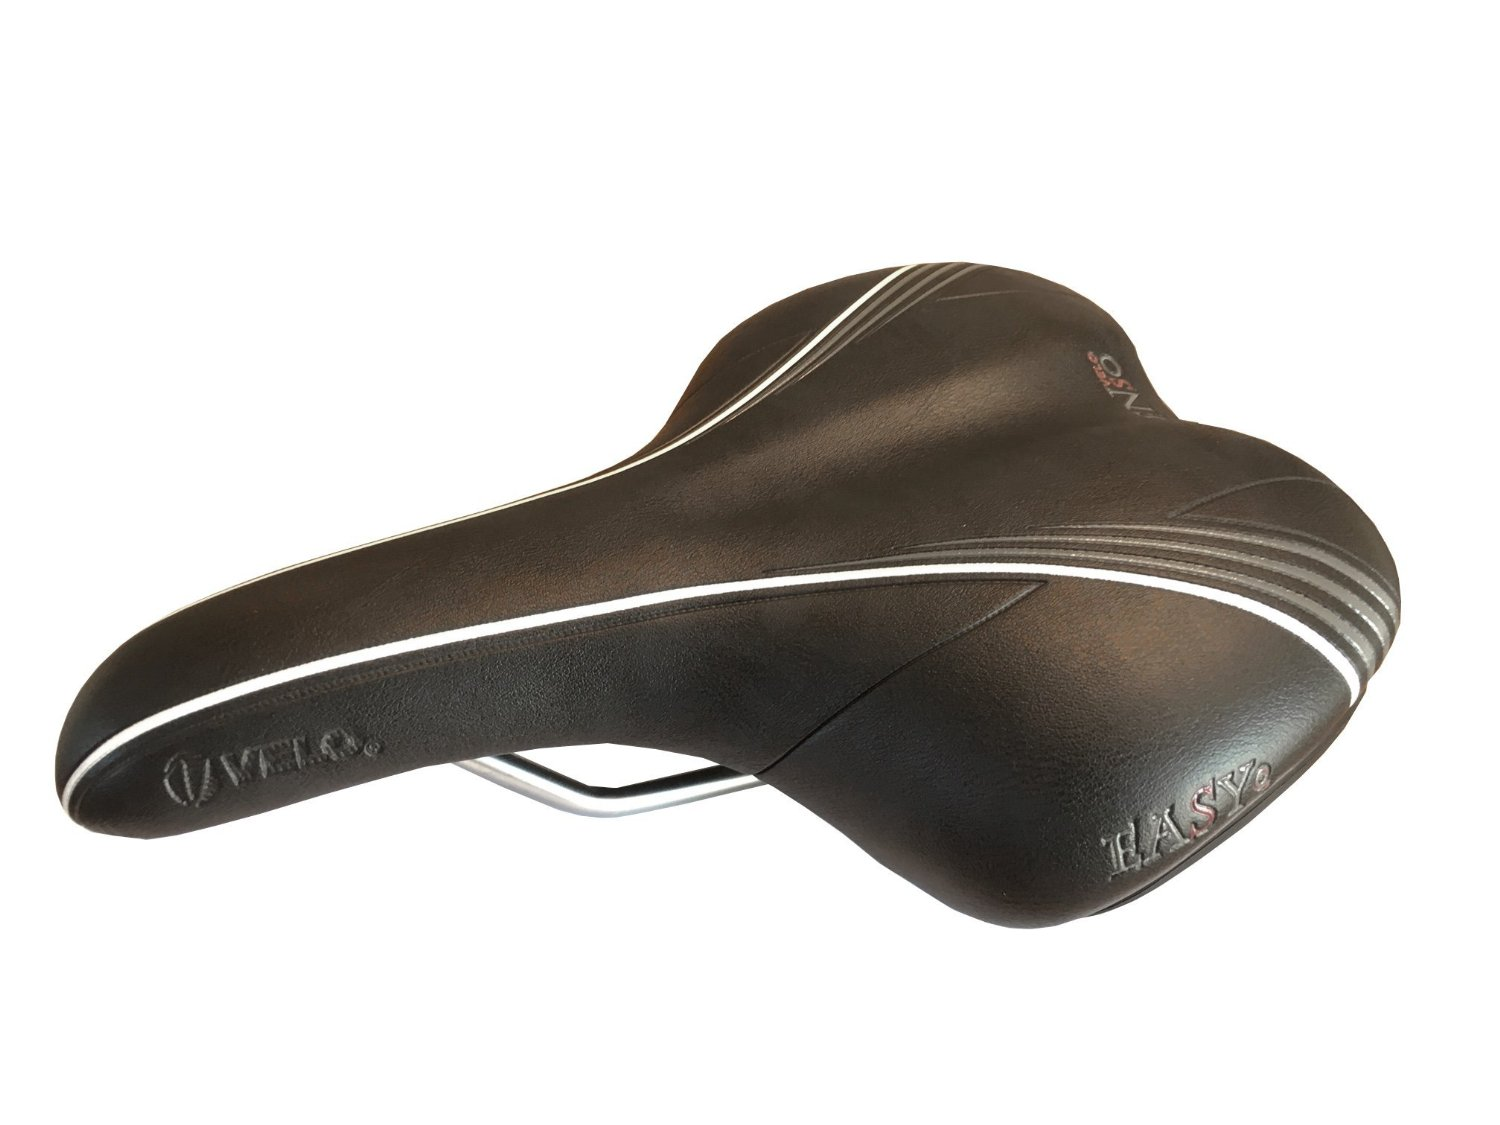 City and Comfort Bikes Hybrid Commuting Urban Black PU Leather and Gel Bike Saddle for Man Women VELO VL-6263 Plush Comfortable Bicycle Seat for Beach Cruiser